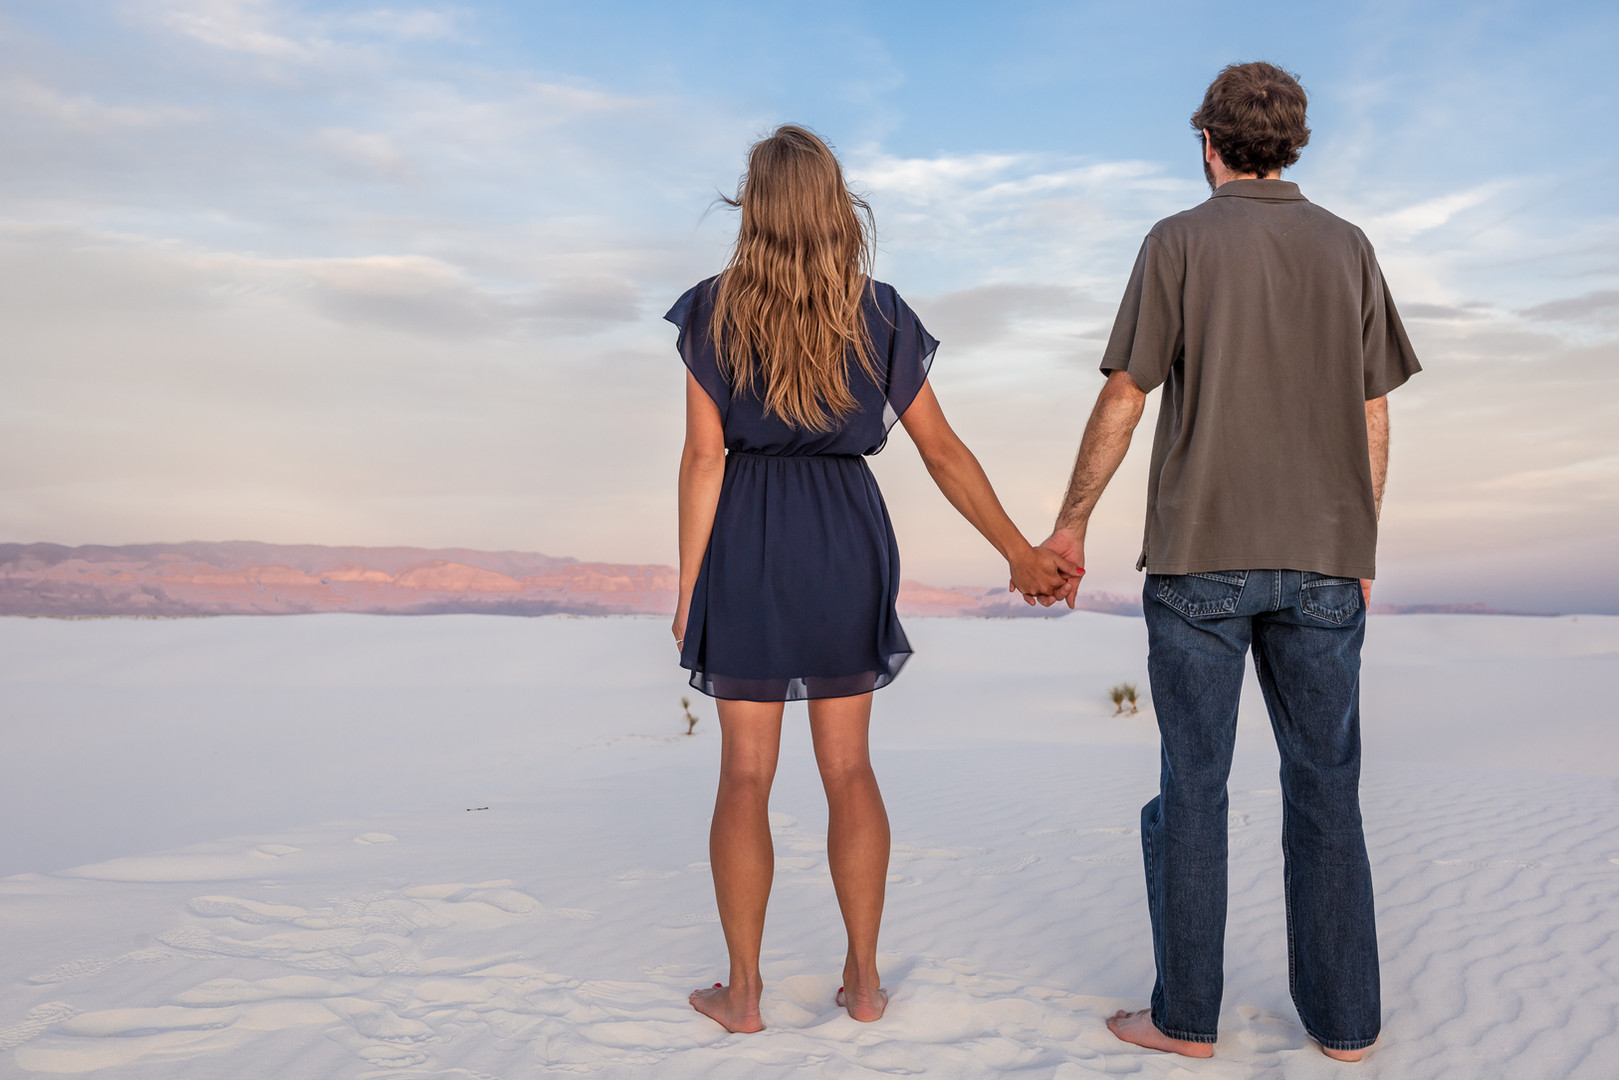 Engagement Photos at White Sands, New Mexico